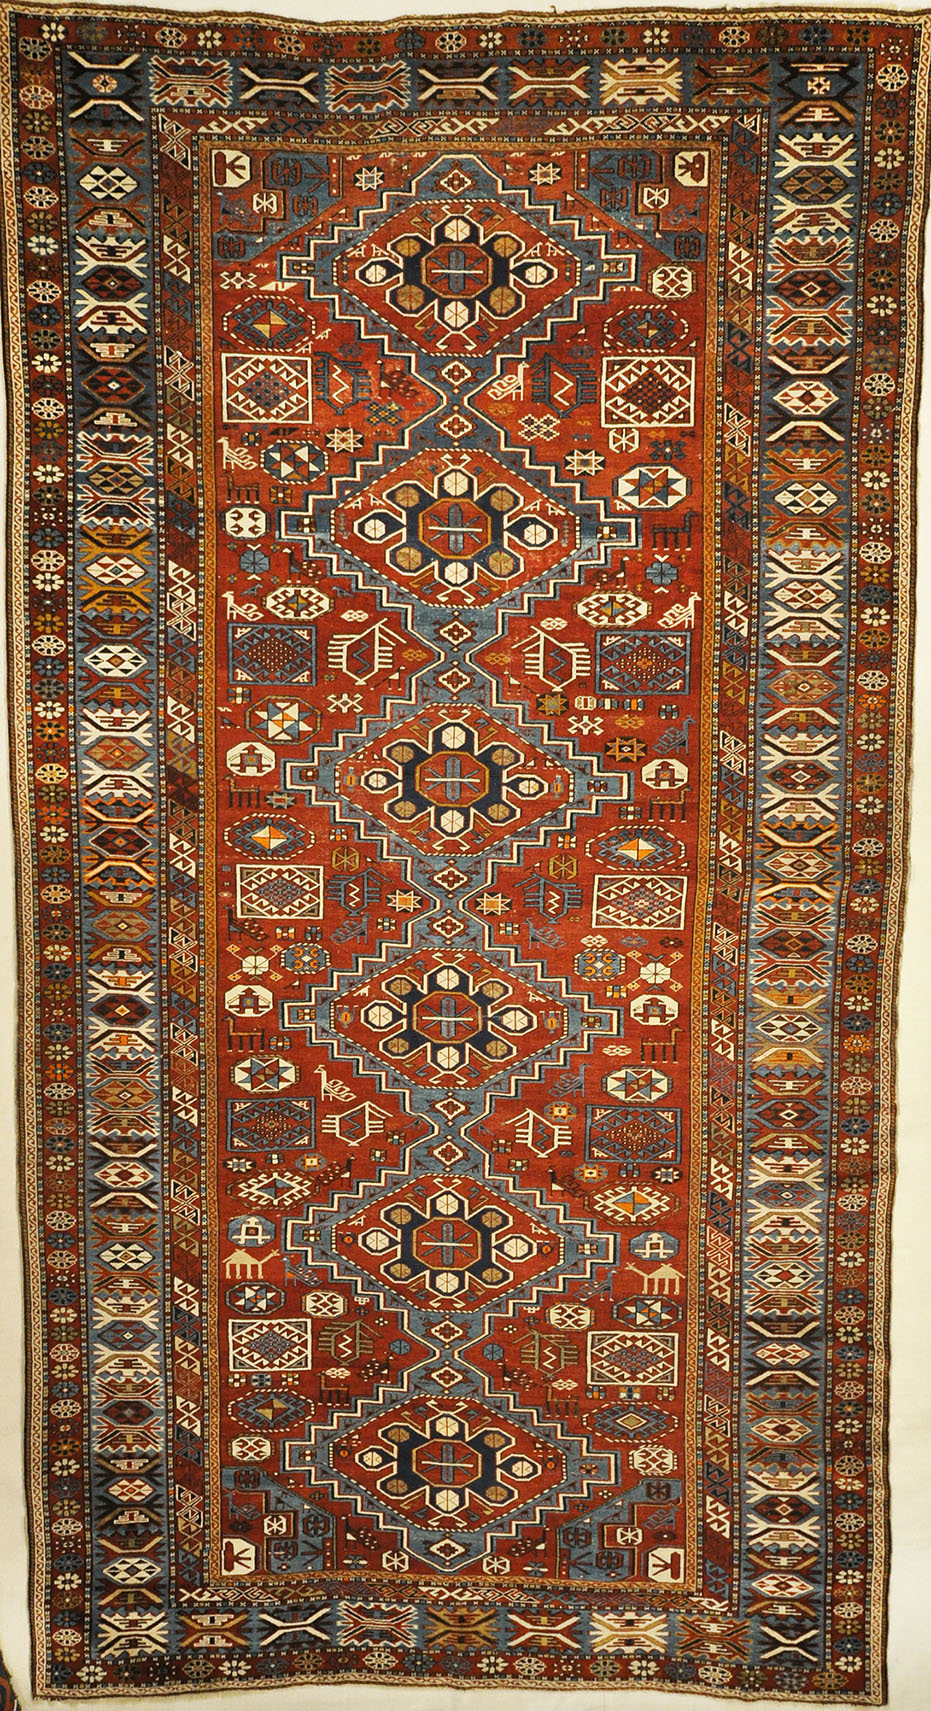 Fine Antique Shiwan long rug hand made of natural wool and organic dyes. Beautiful antique piece with animals and unique vibrant colors.